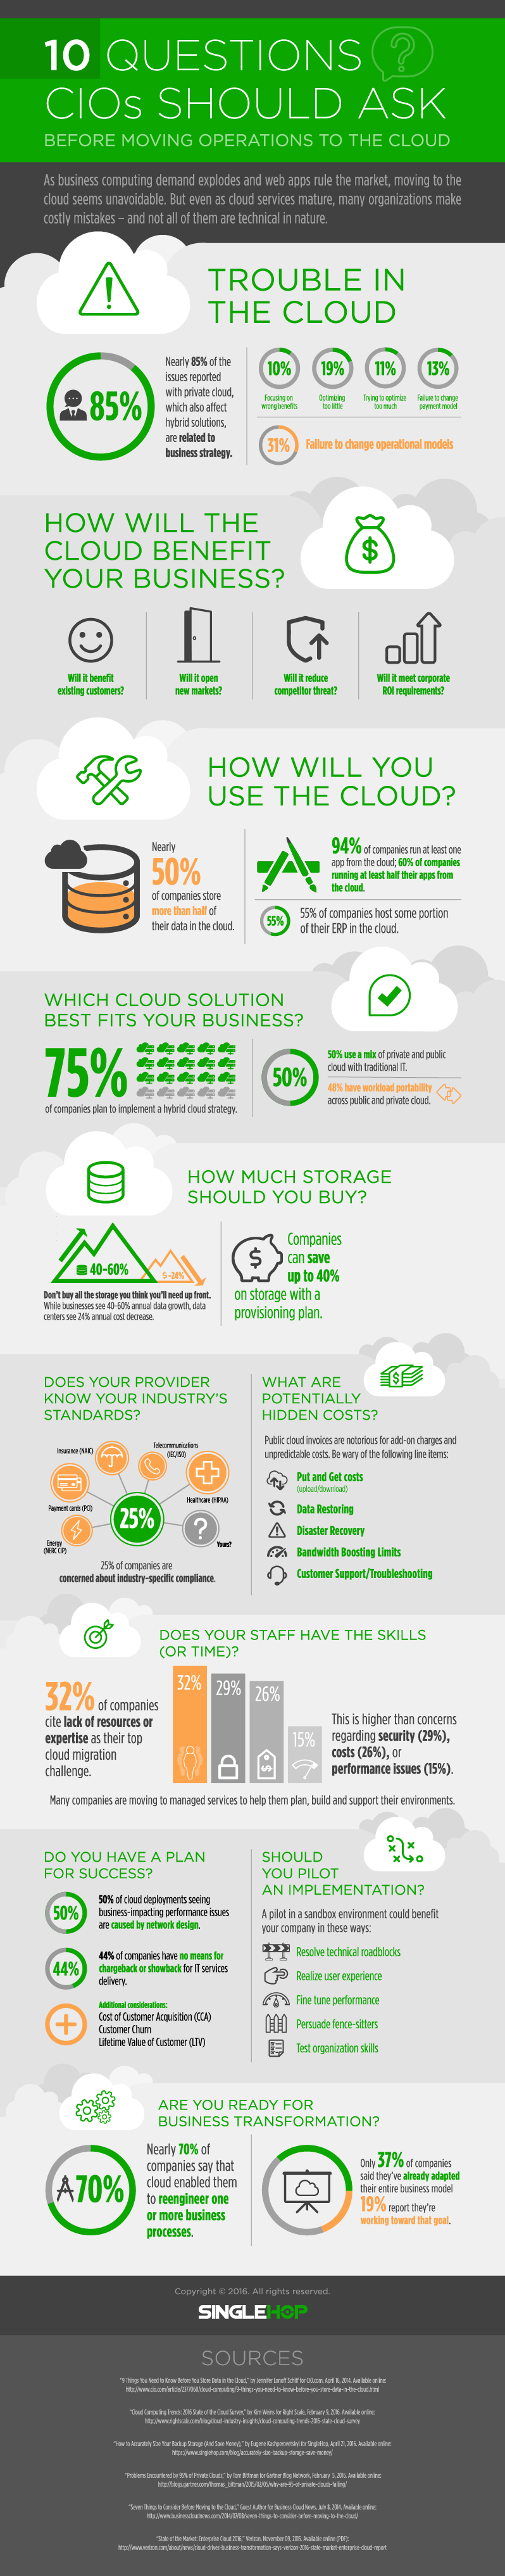 10 Questions CIOs Should Ask Before Moving Operations to the Cloud - Image 1